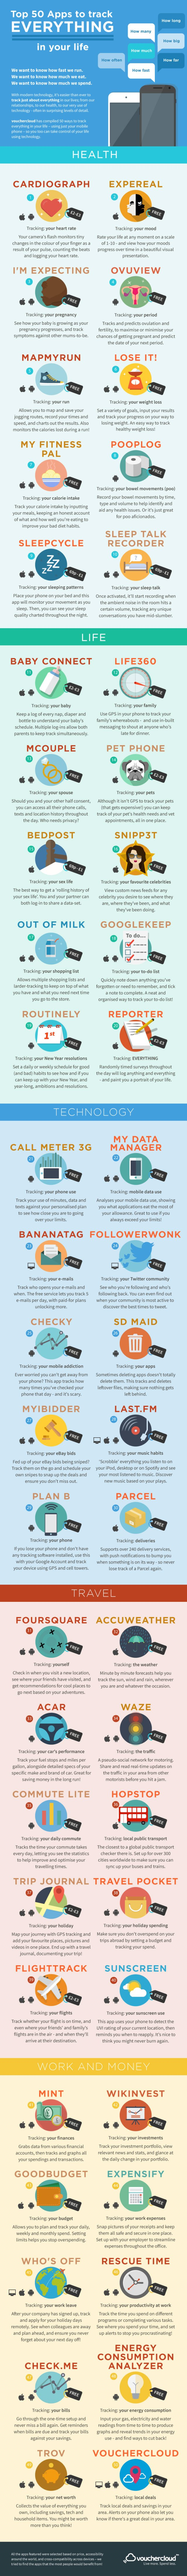 Email_instant_50_Apps_to_Track_Everything_infographic